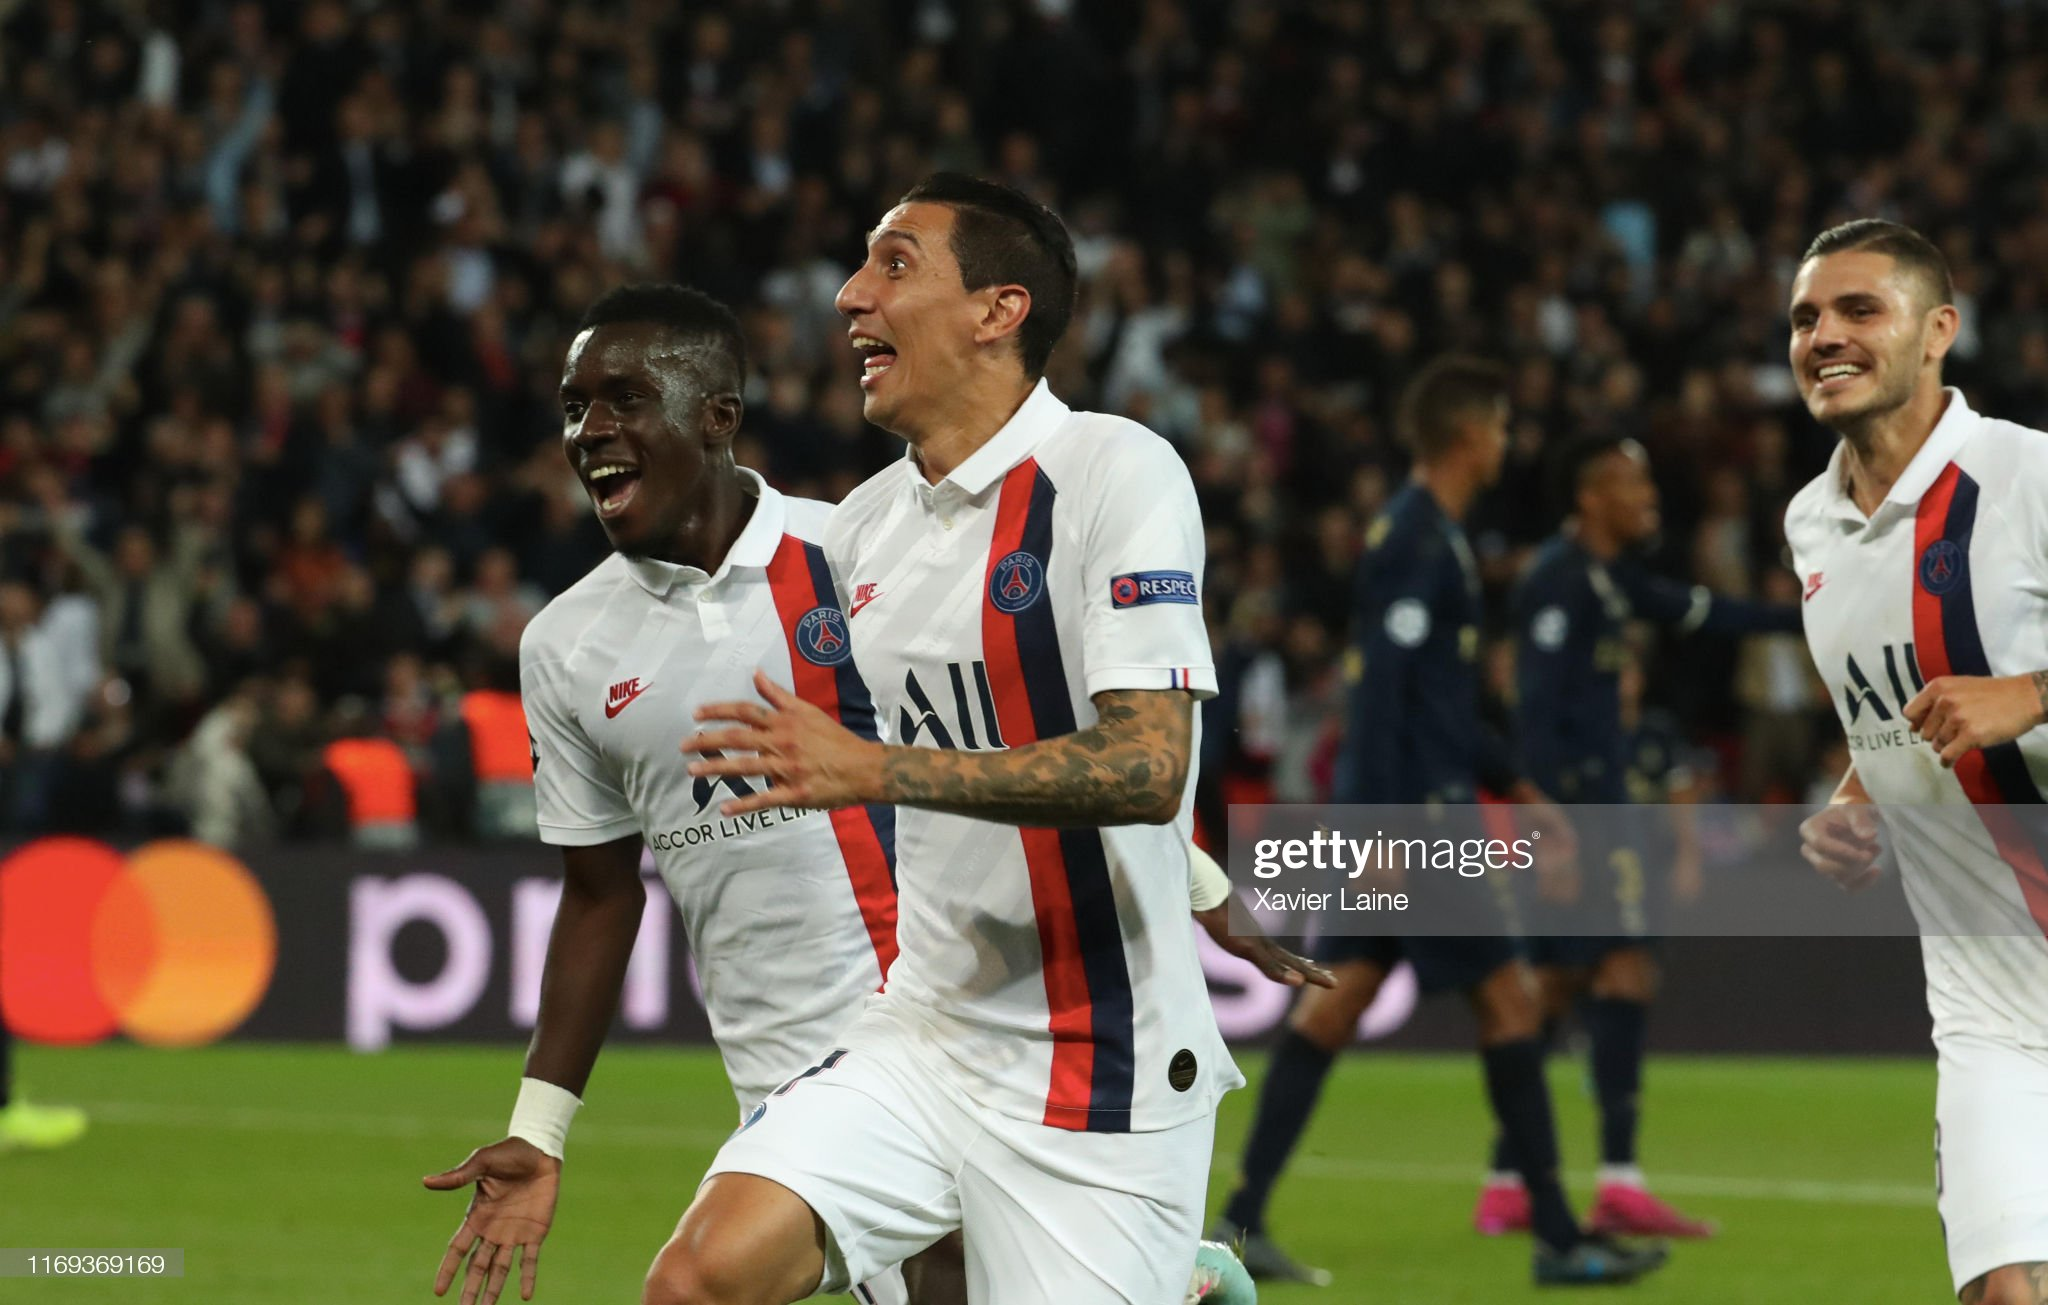 PSG hammer Real Madrid, as Atletico Madrid and Juventus draw